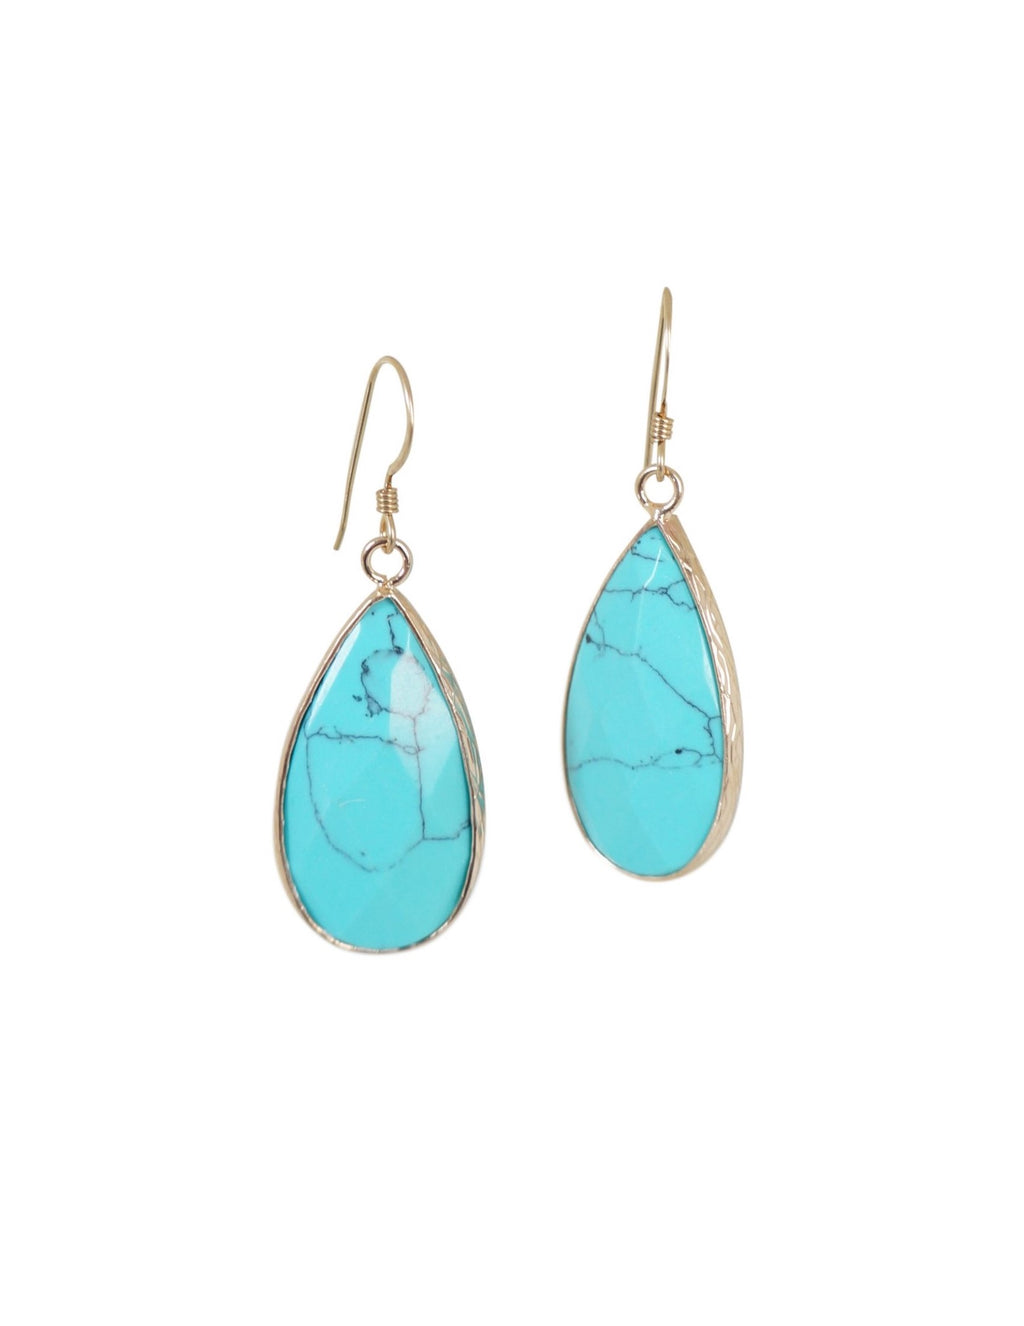 Expression Earrings - Carolyn Hearn Designs